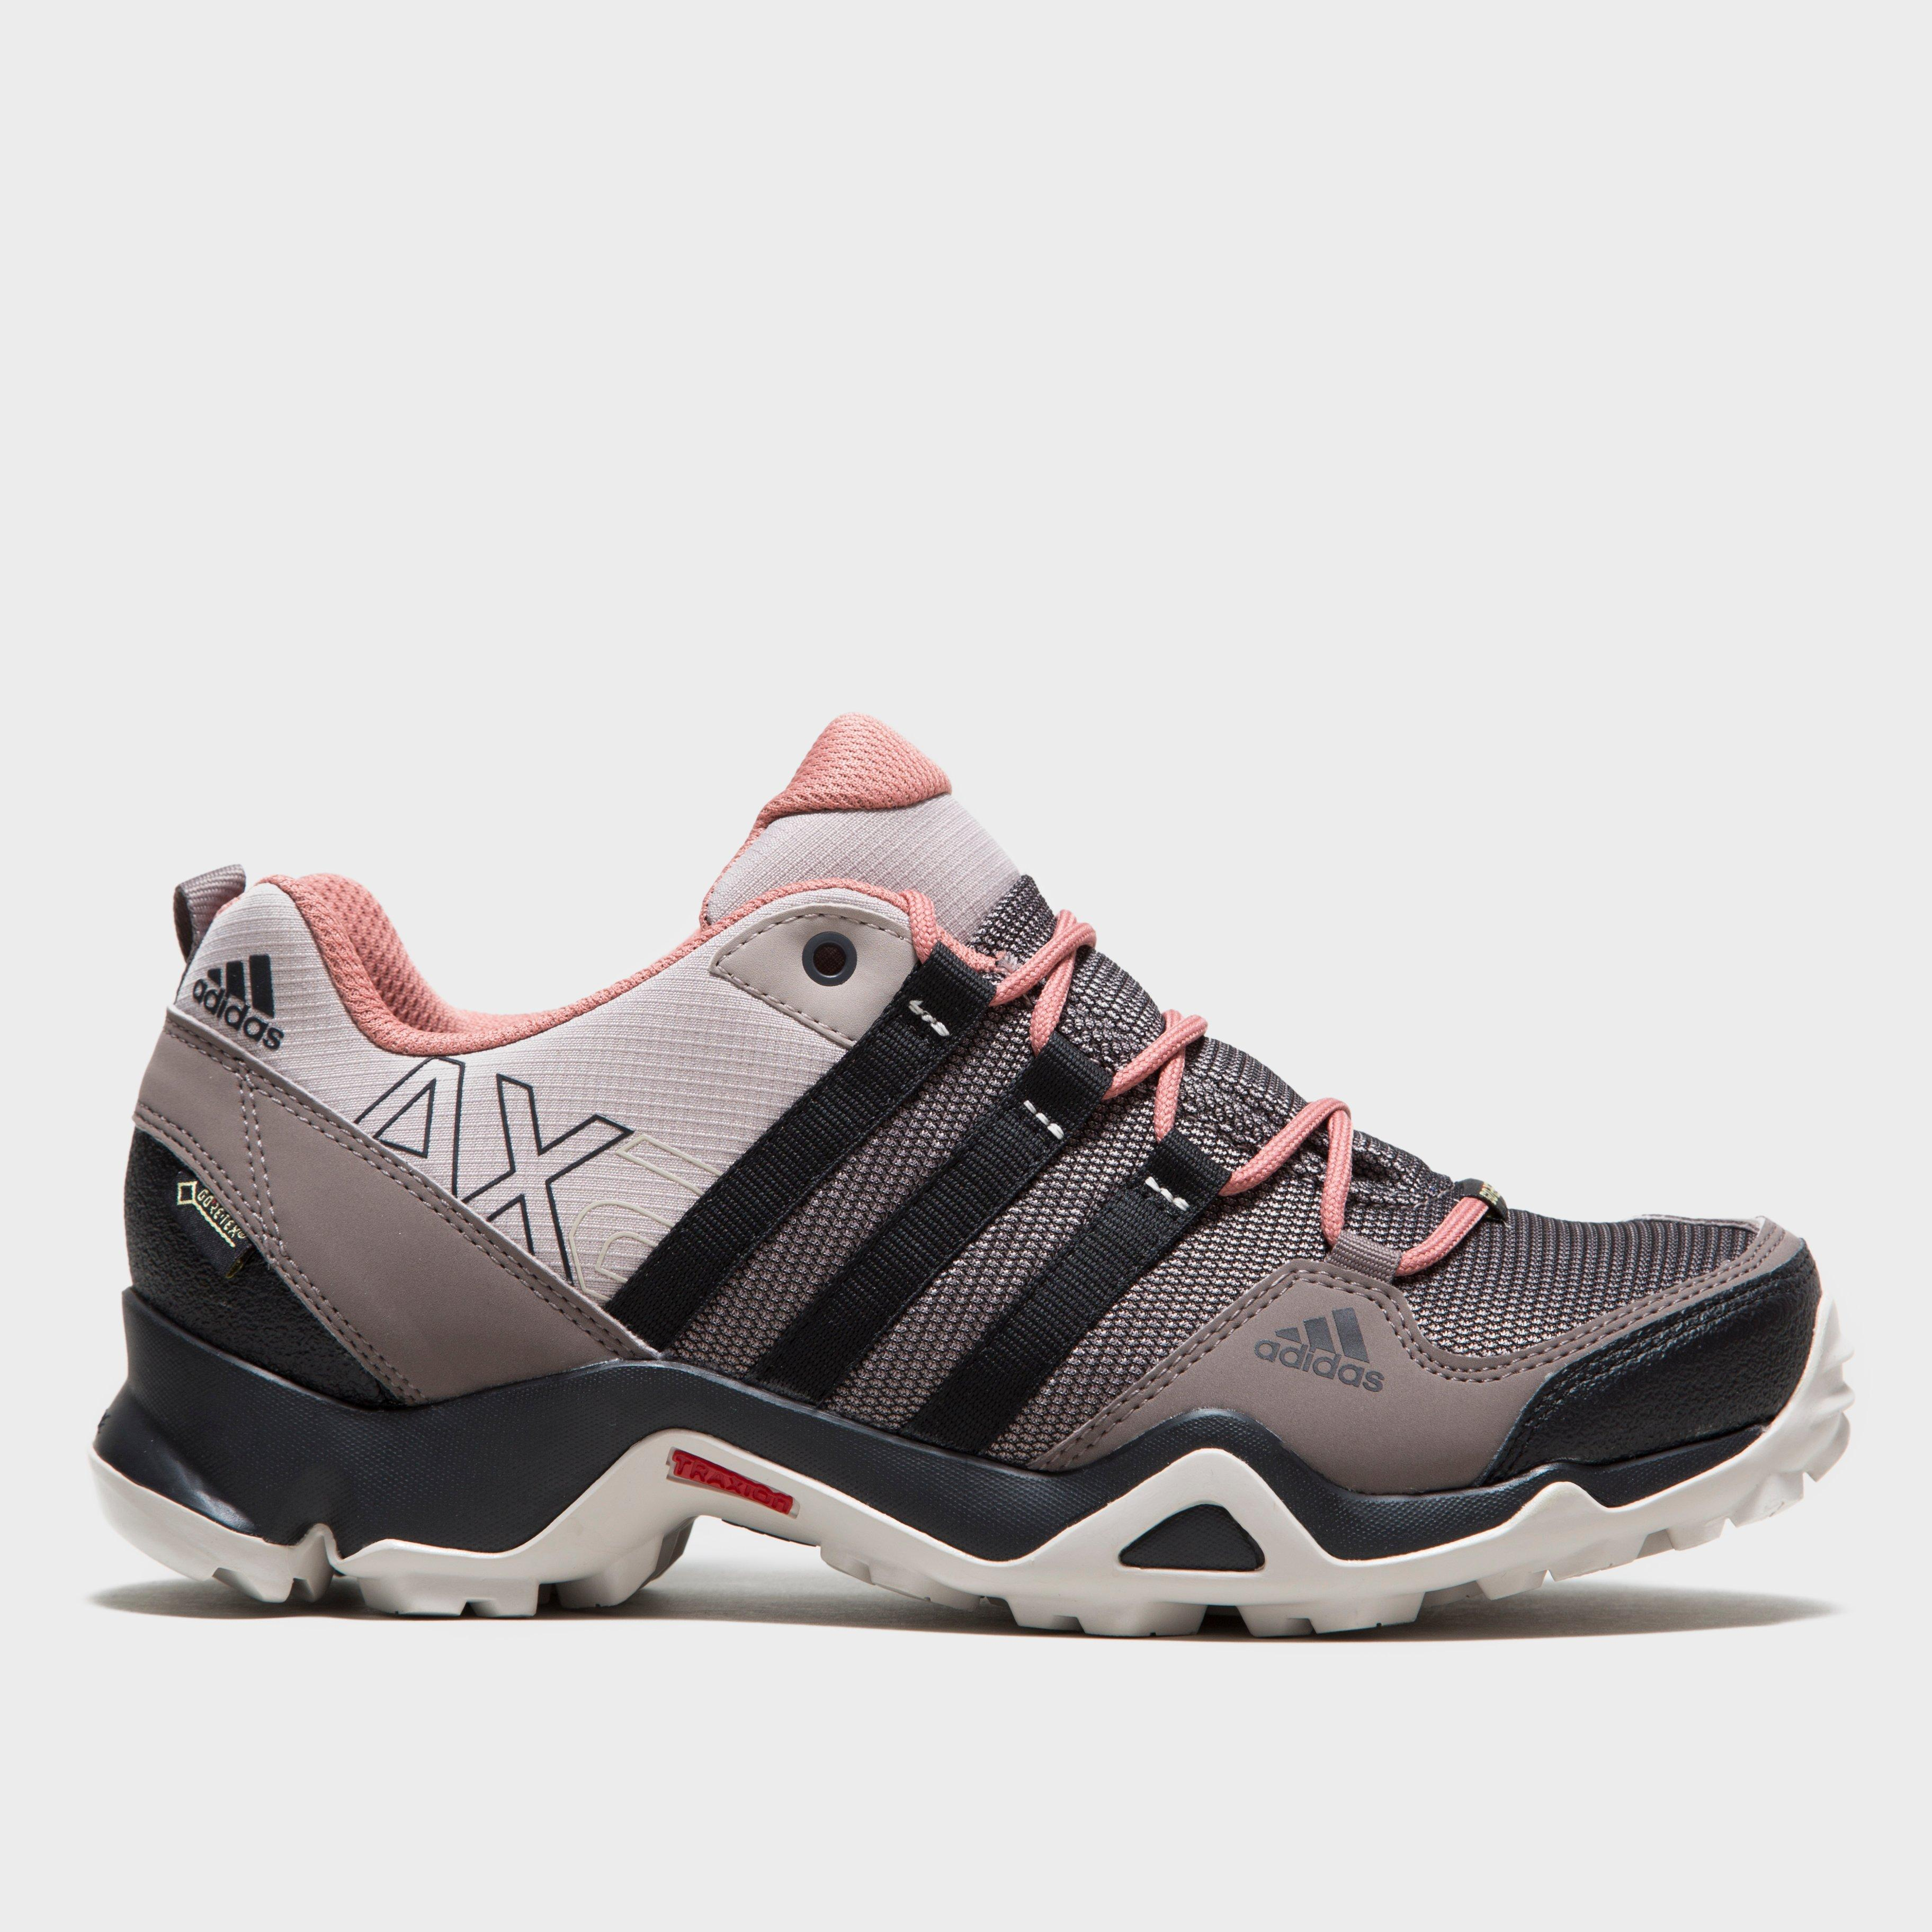 Adidas Womens AX2 GORETEX Shoe Grey